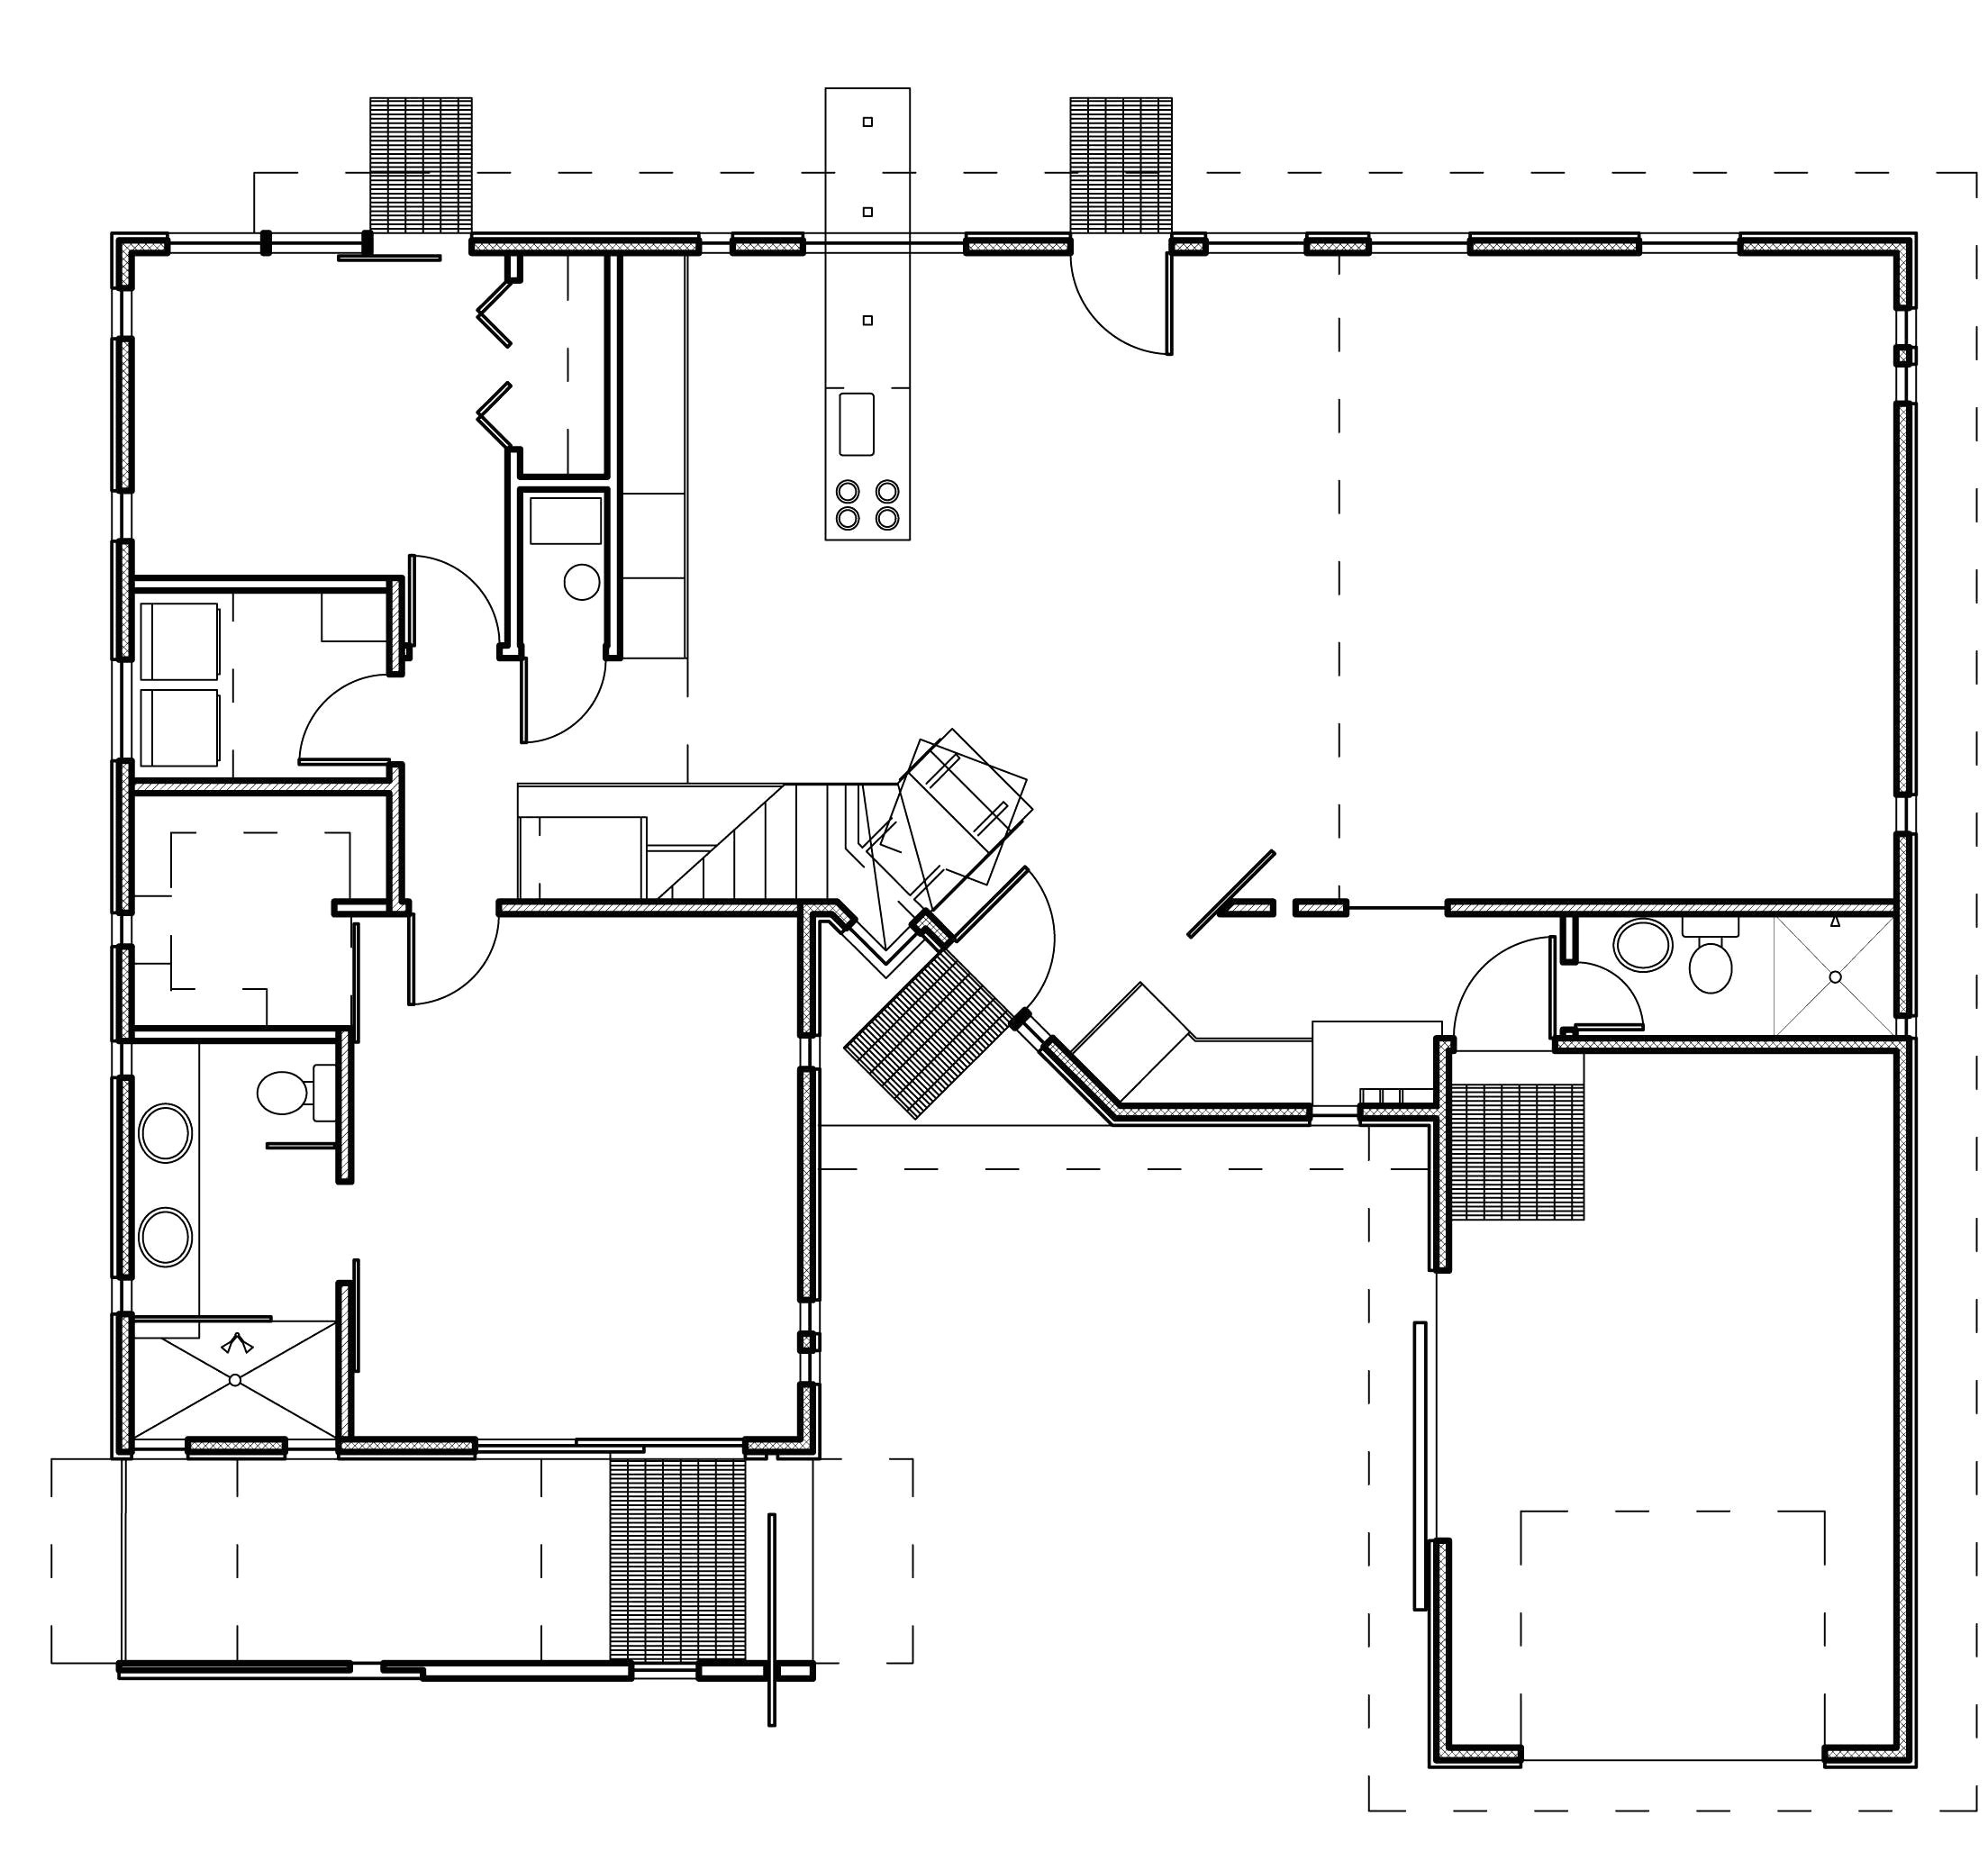 micro compact home floor plan